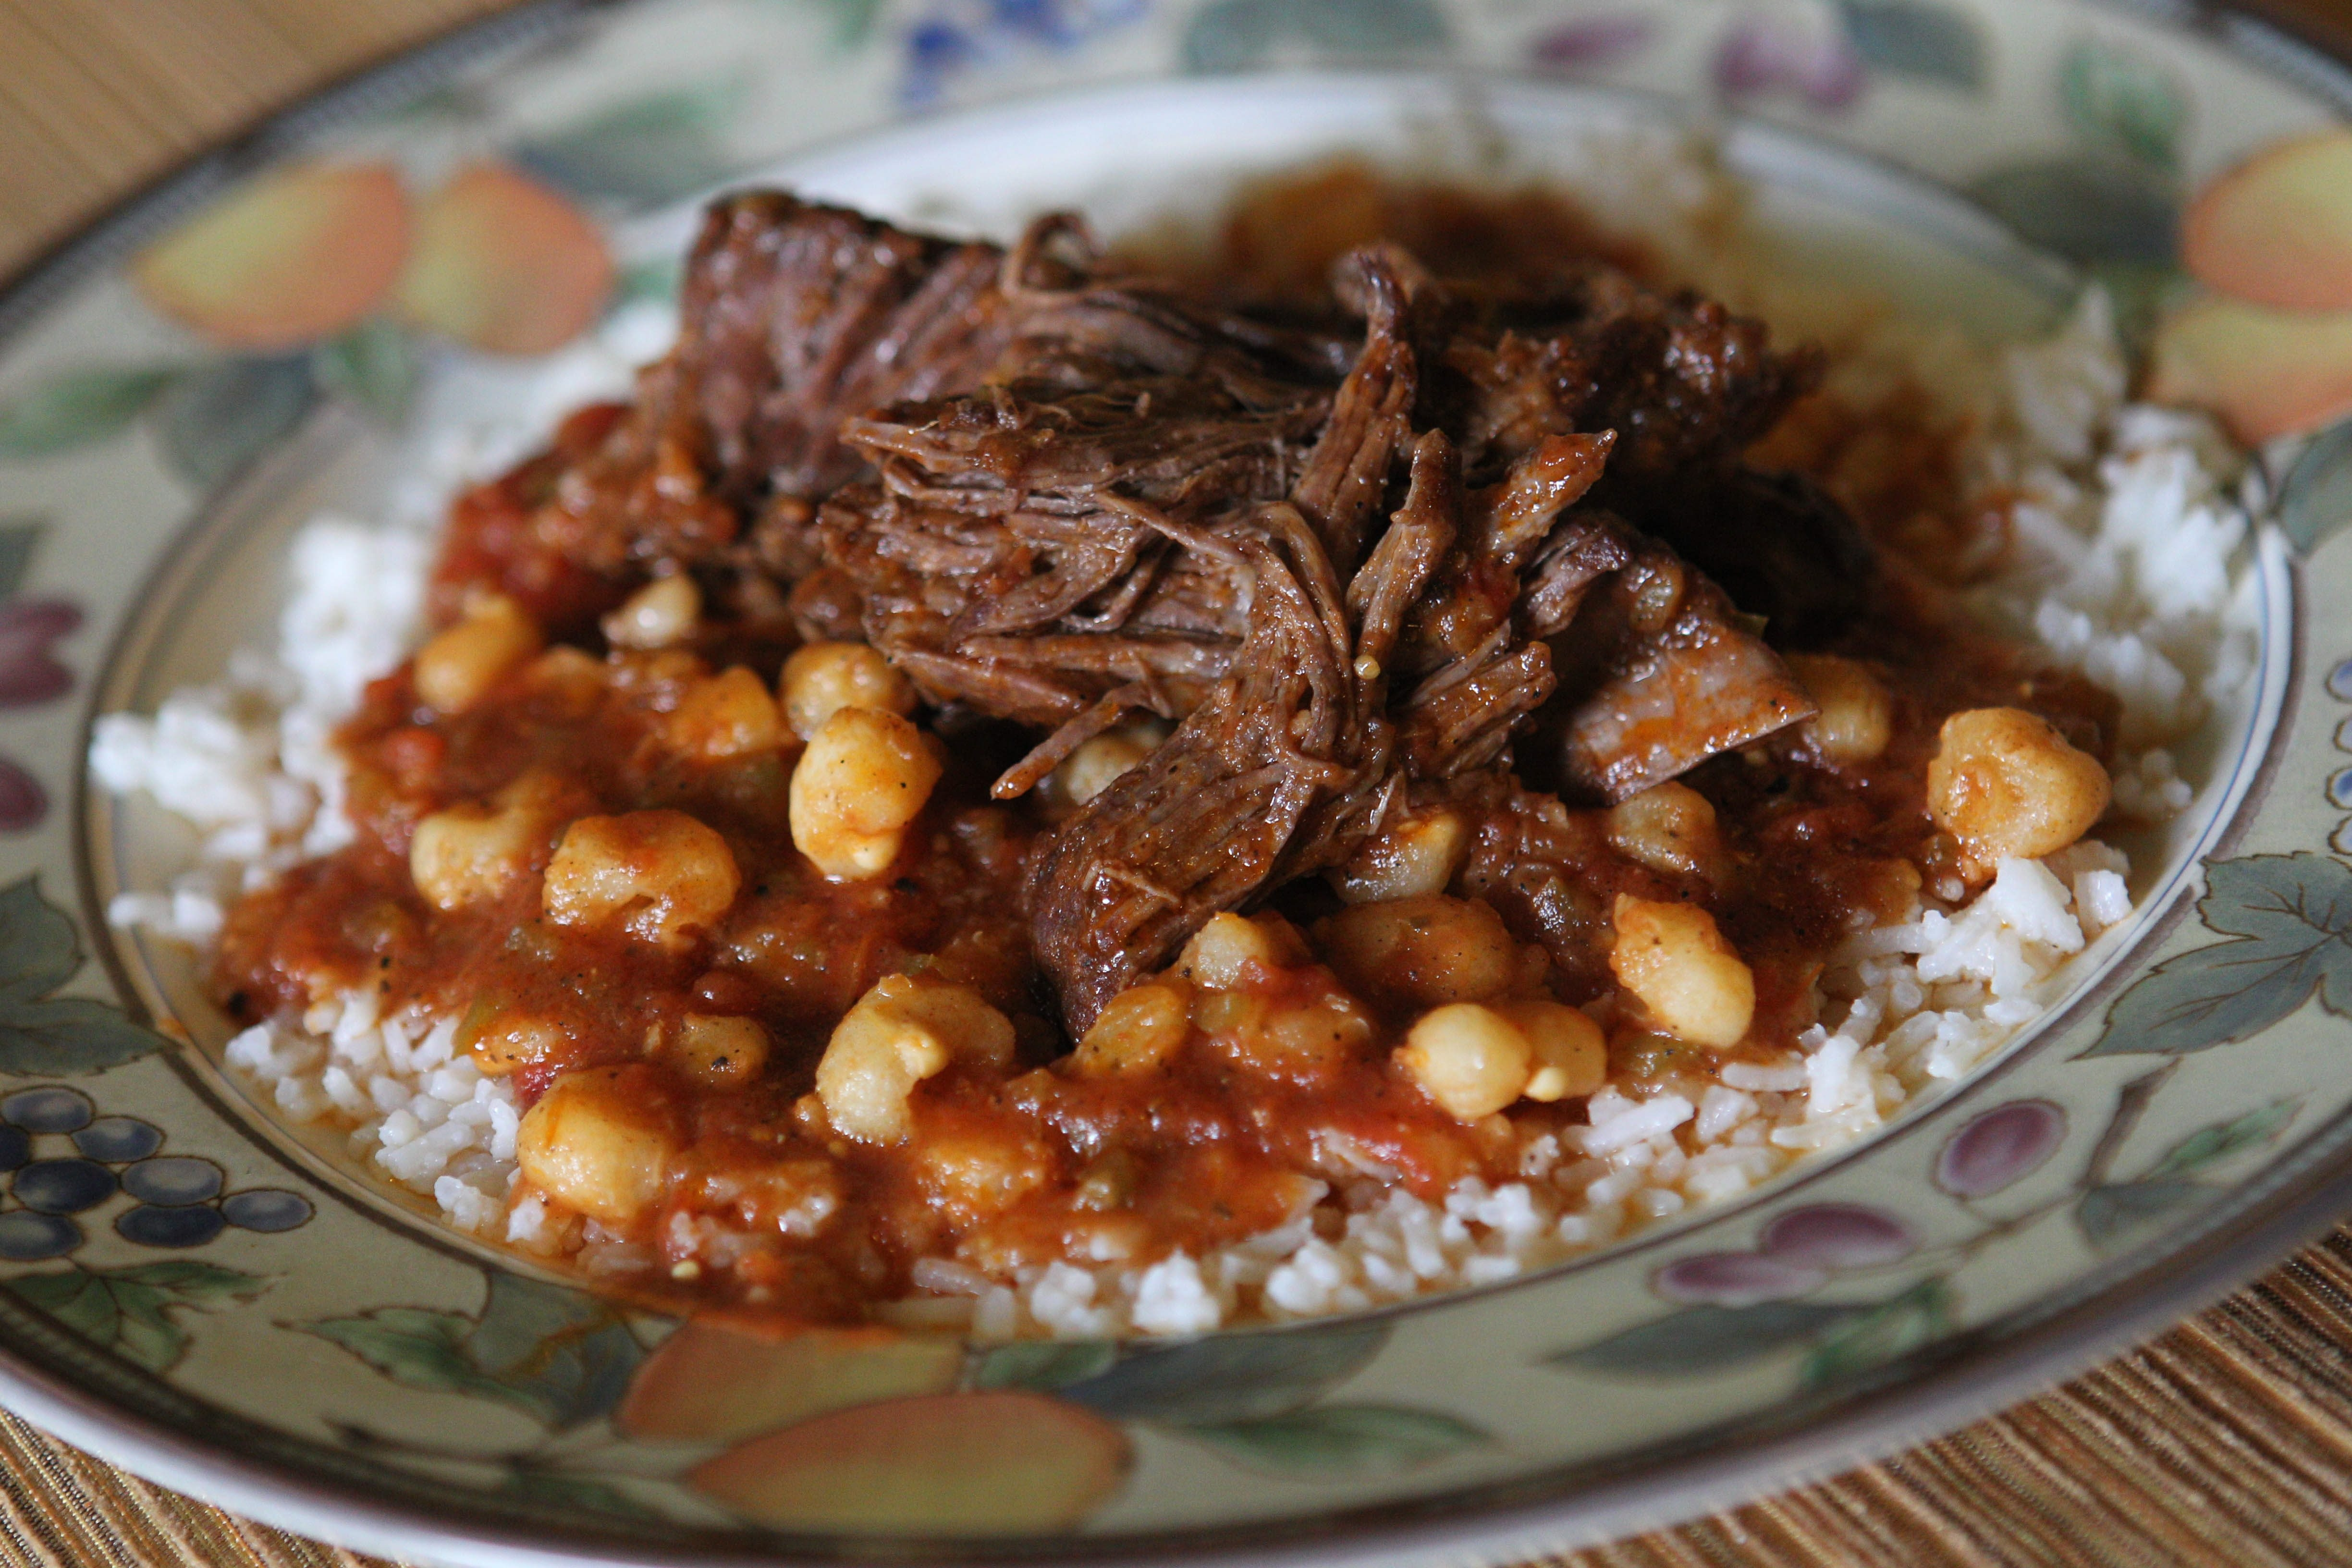 Hominy anchors this hearty Mexican pot roast, an easy-to-make weekend dinner.